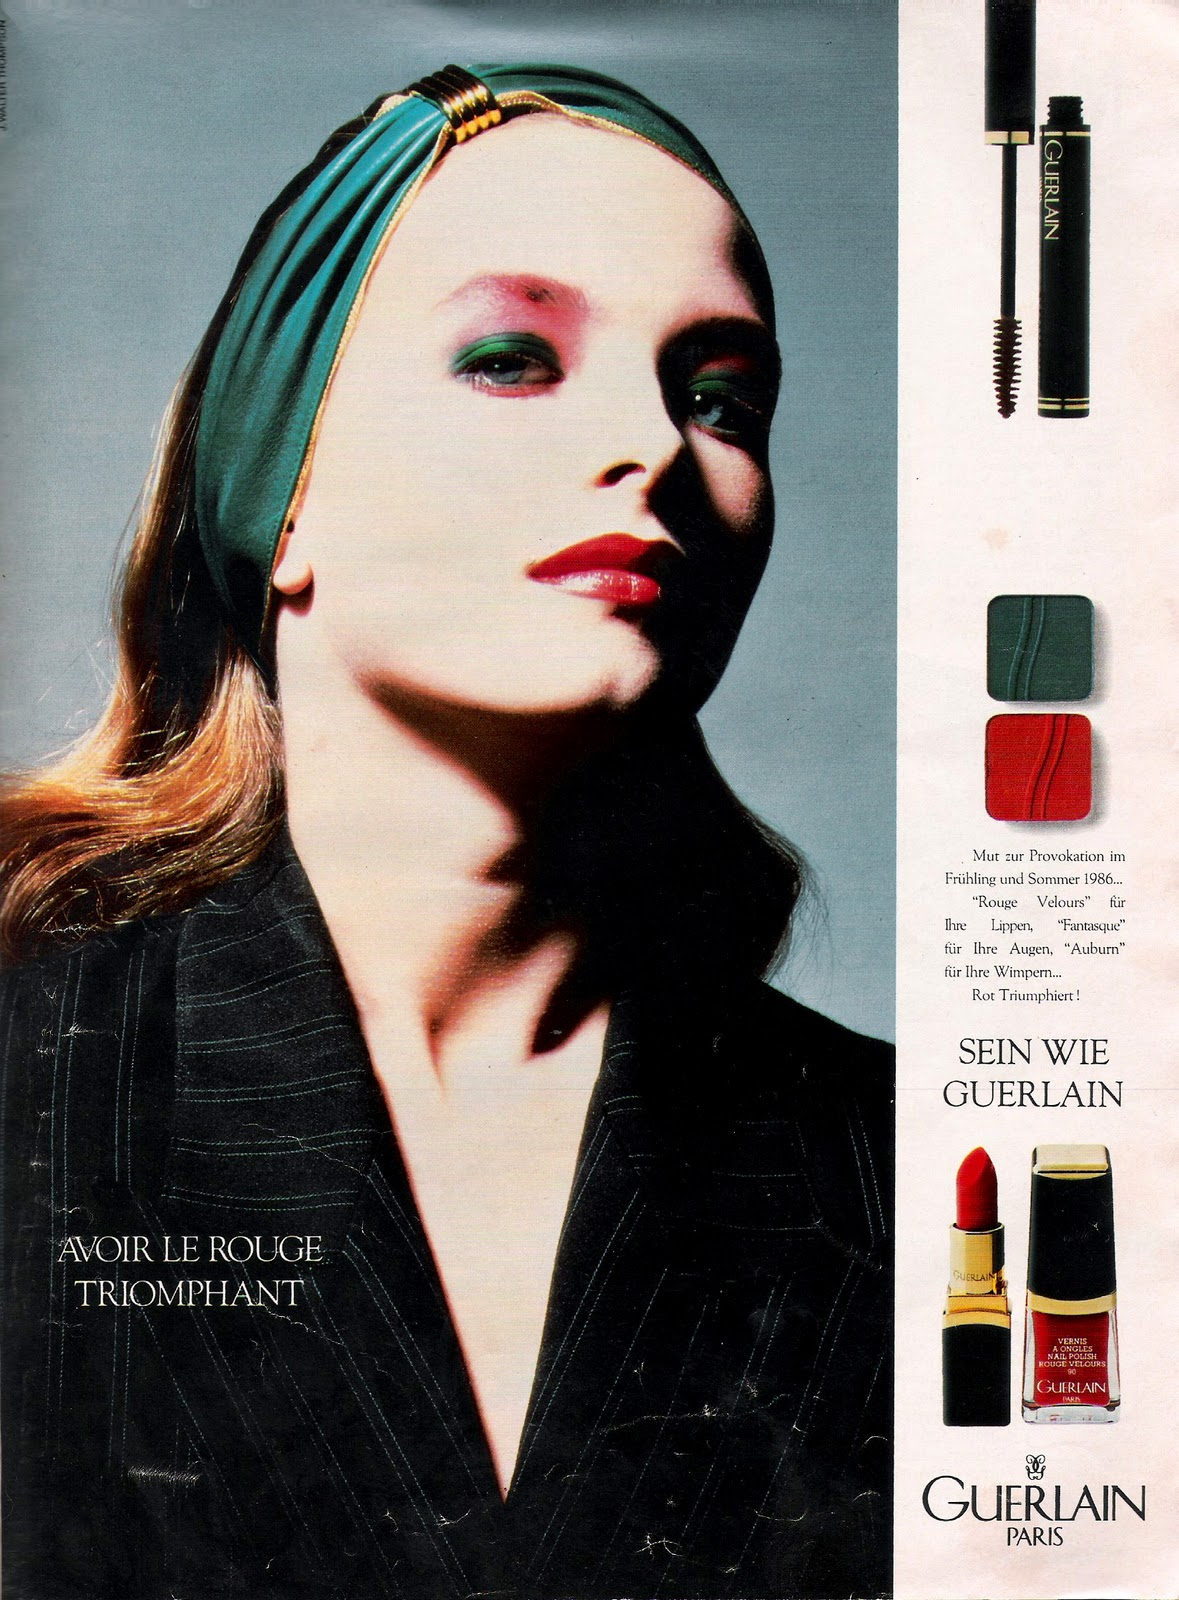 e6b01d842767 First up in this issue we have a Guerlain Paris make-up ad. Then a make-up  spread showcasing cosmetics from Chanel